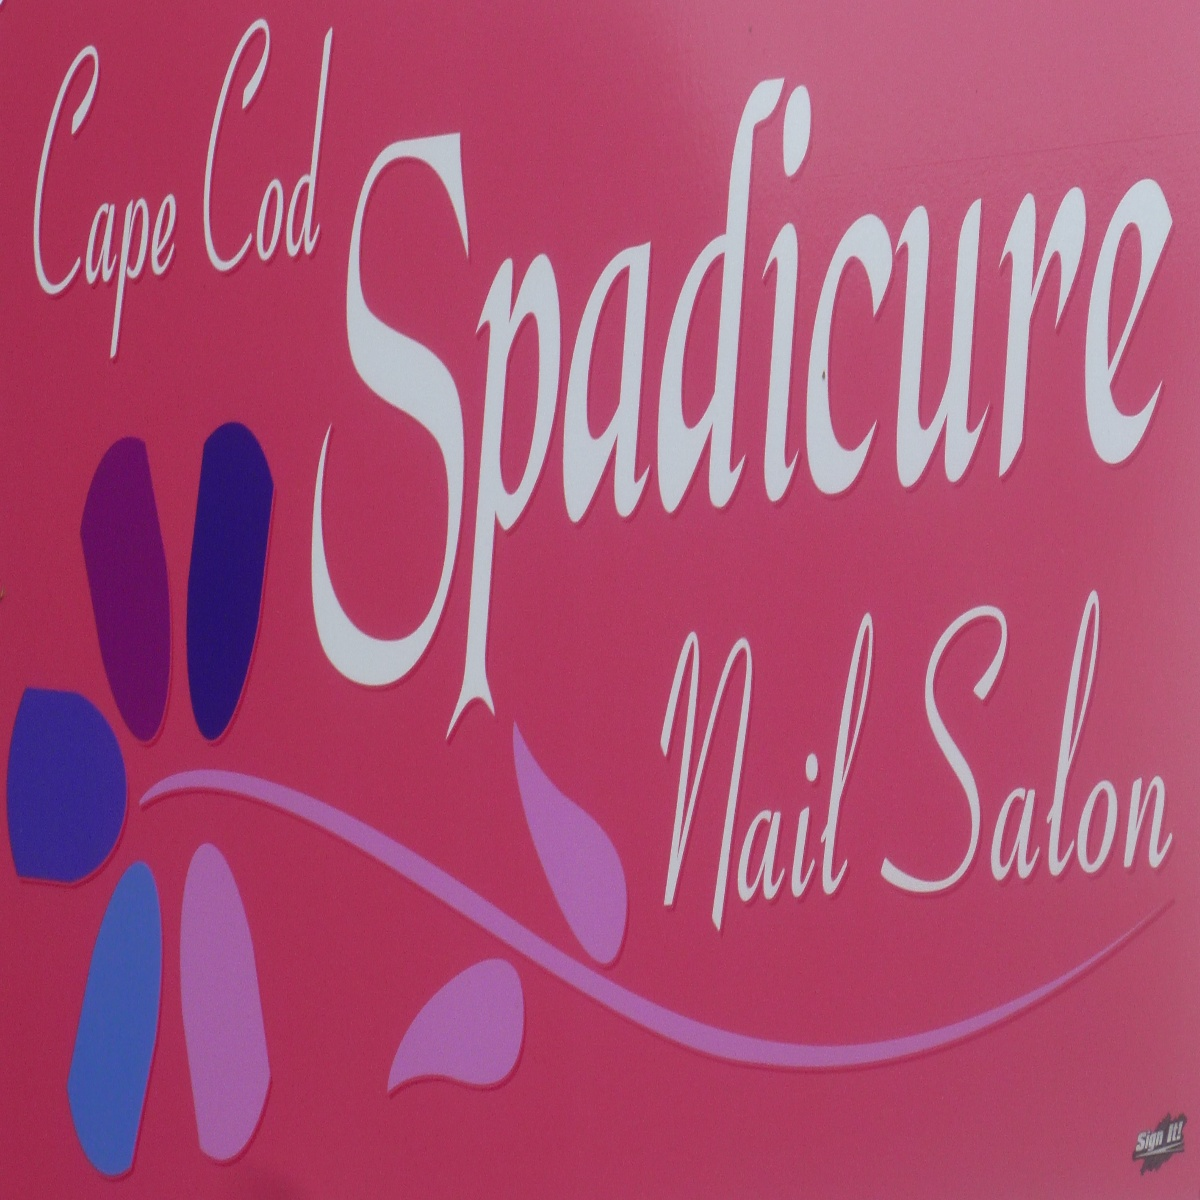 Cape Cod Spadicure Nail Salon